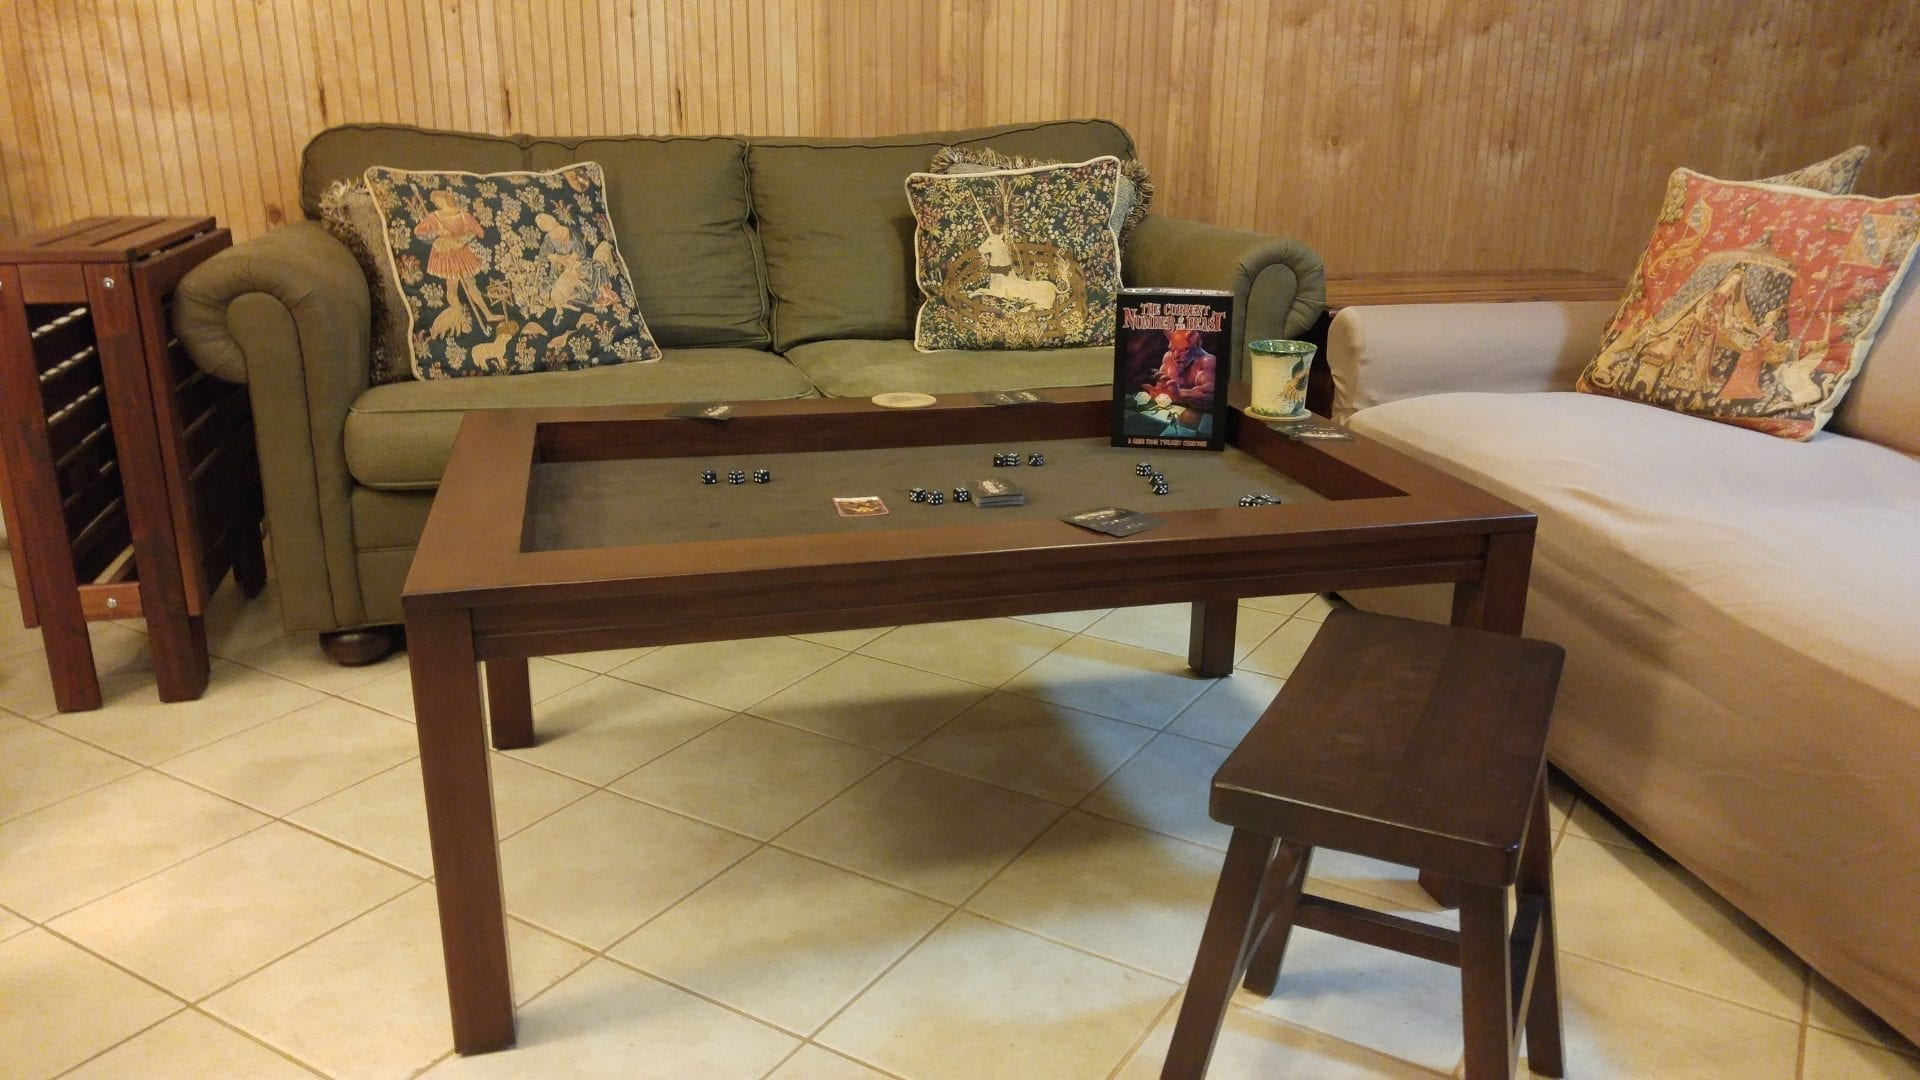 Incroyable Coffee Game Table In Cherry Finish And Dark Brown Fabric With Side Table/Bench  In